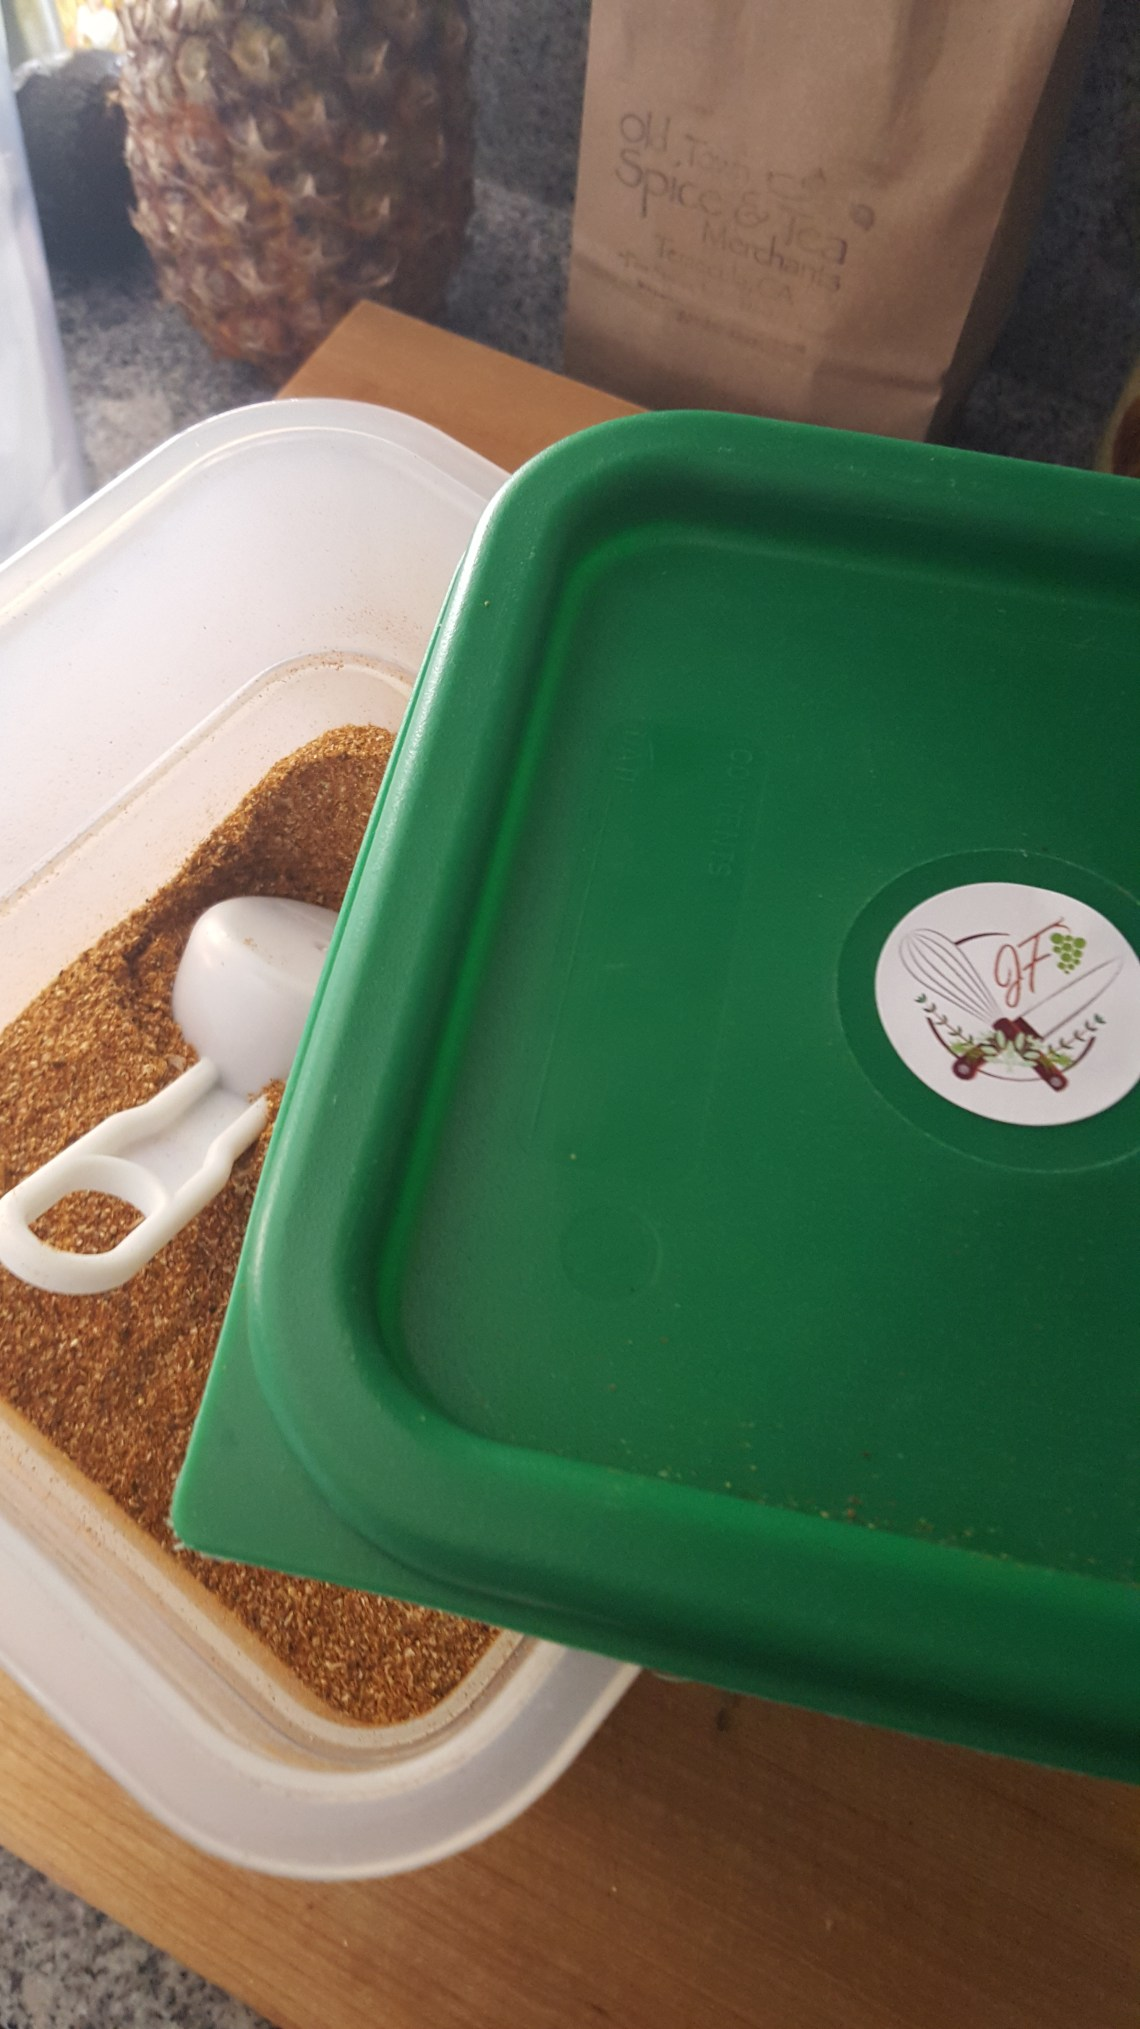 House Seasoning- Spice Mixture- Herbs Salt and Spice that make everything nice